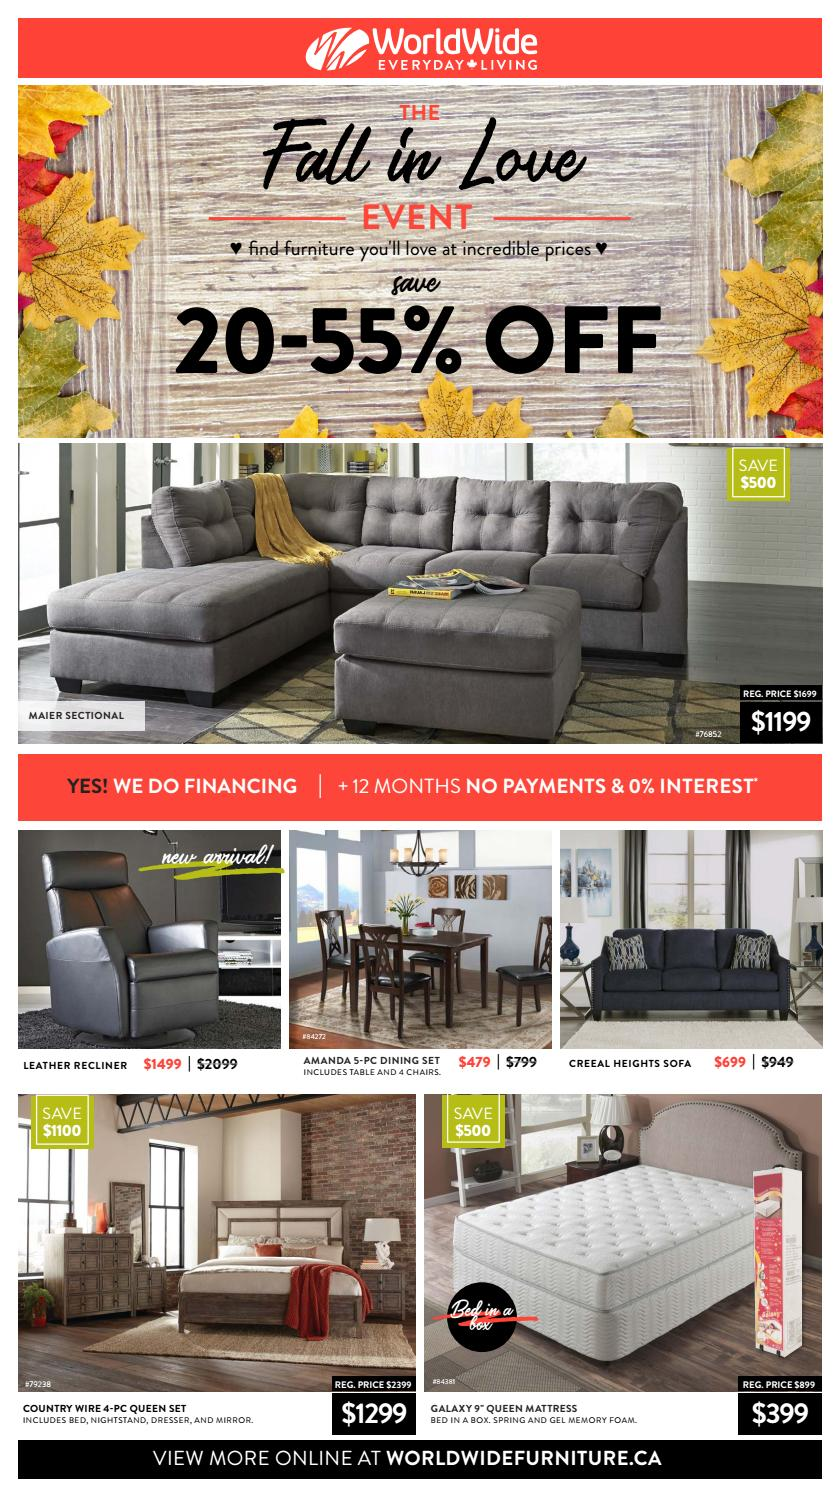 - Worldwide Furniture - The Fall In Love Event By WorldWide